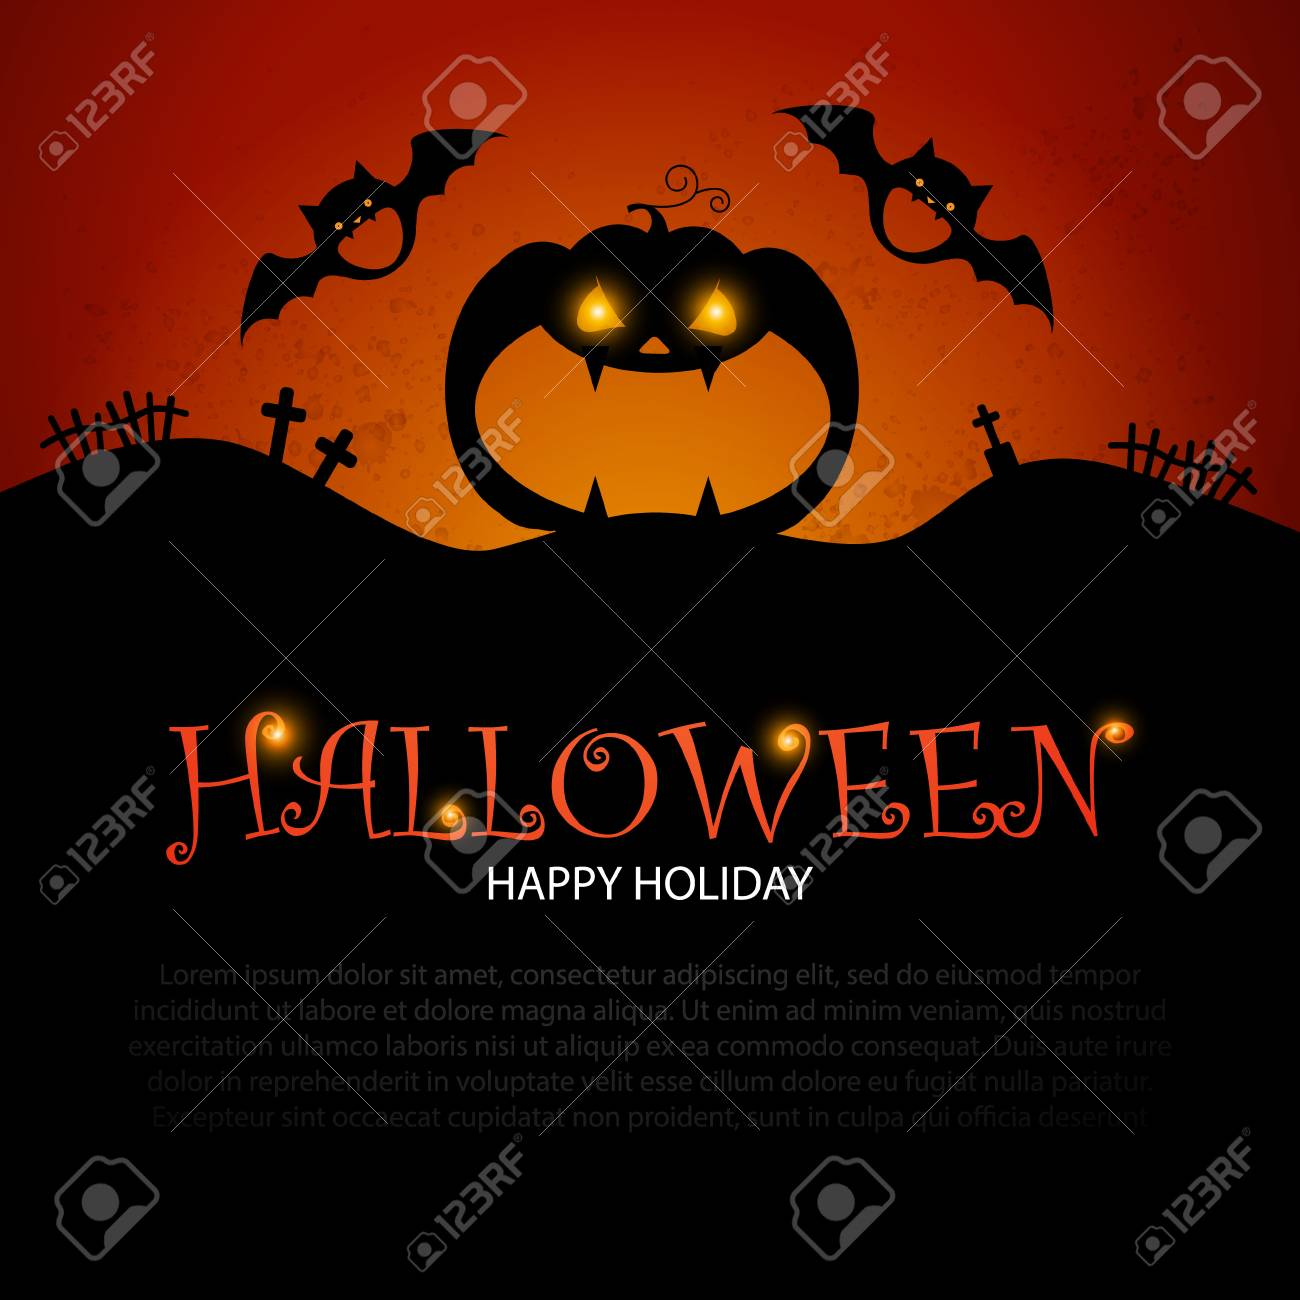 Halloween Party Design Template With Pumpkin Bats And Place